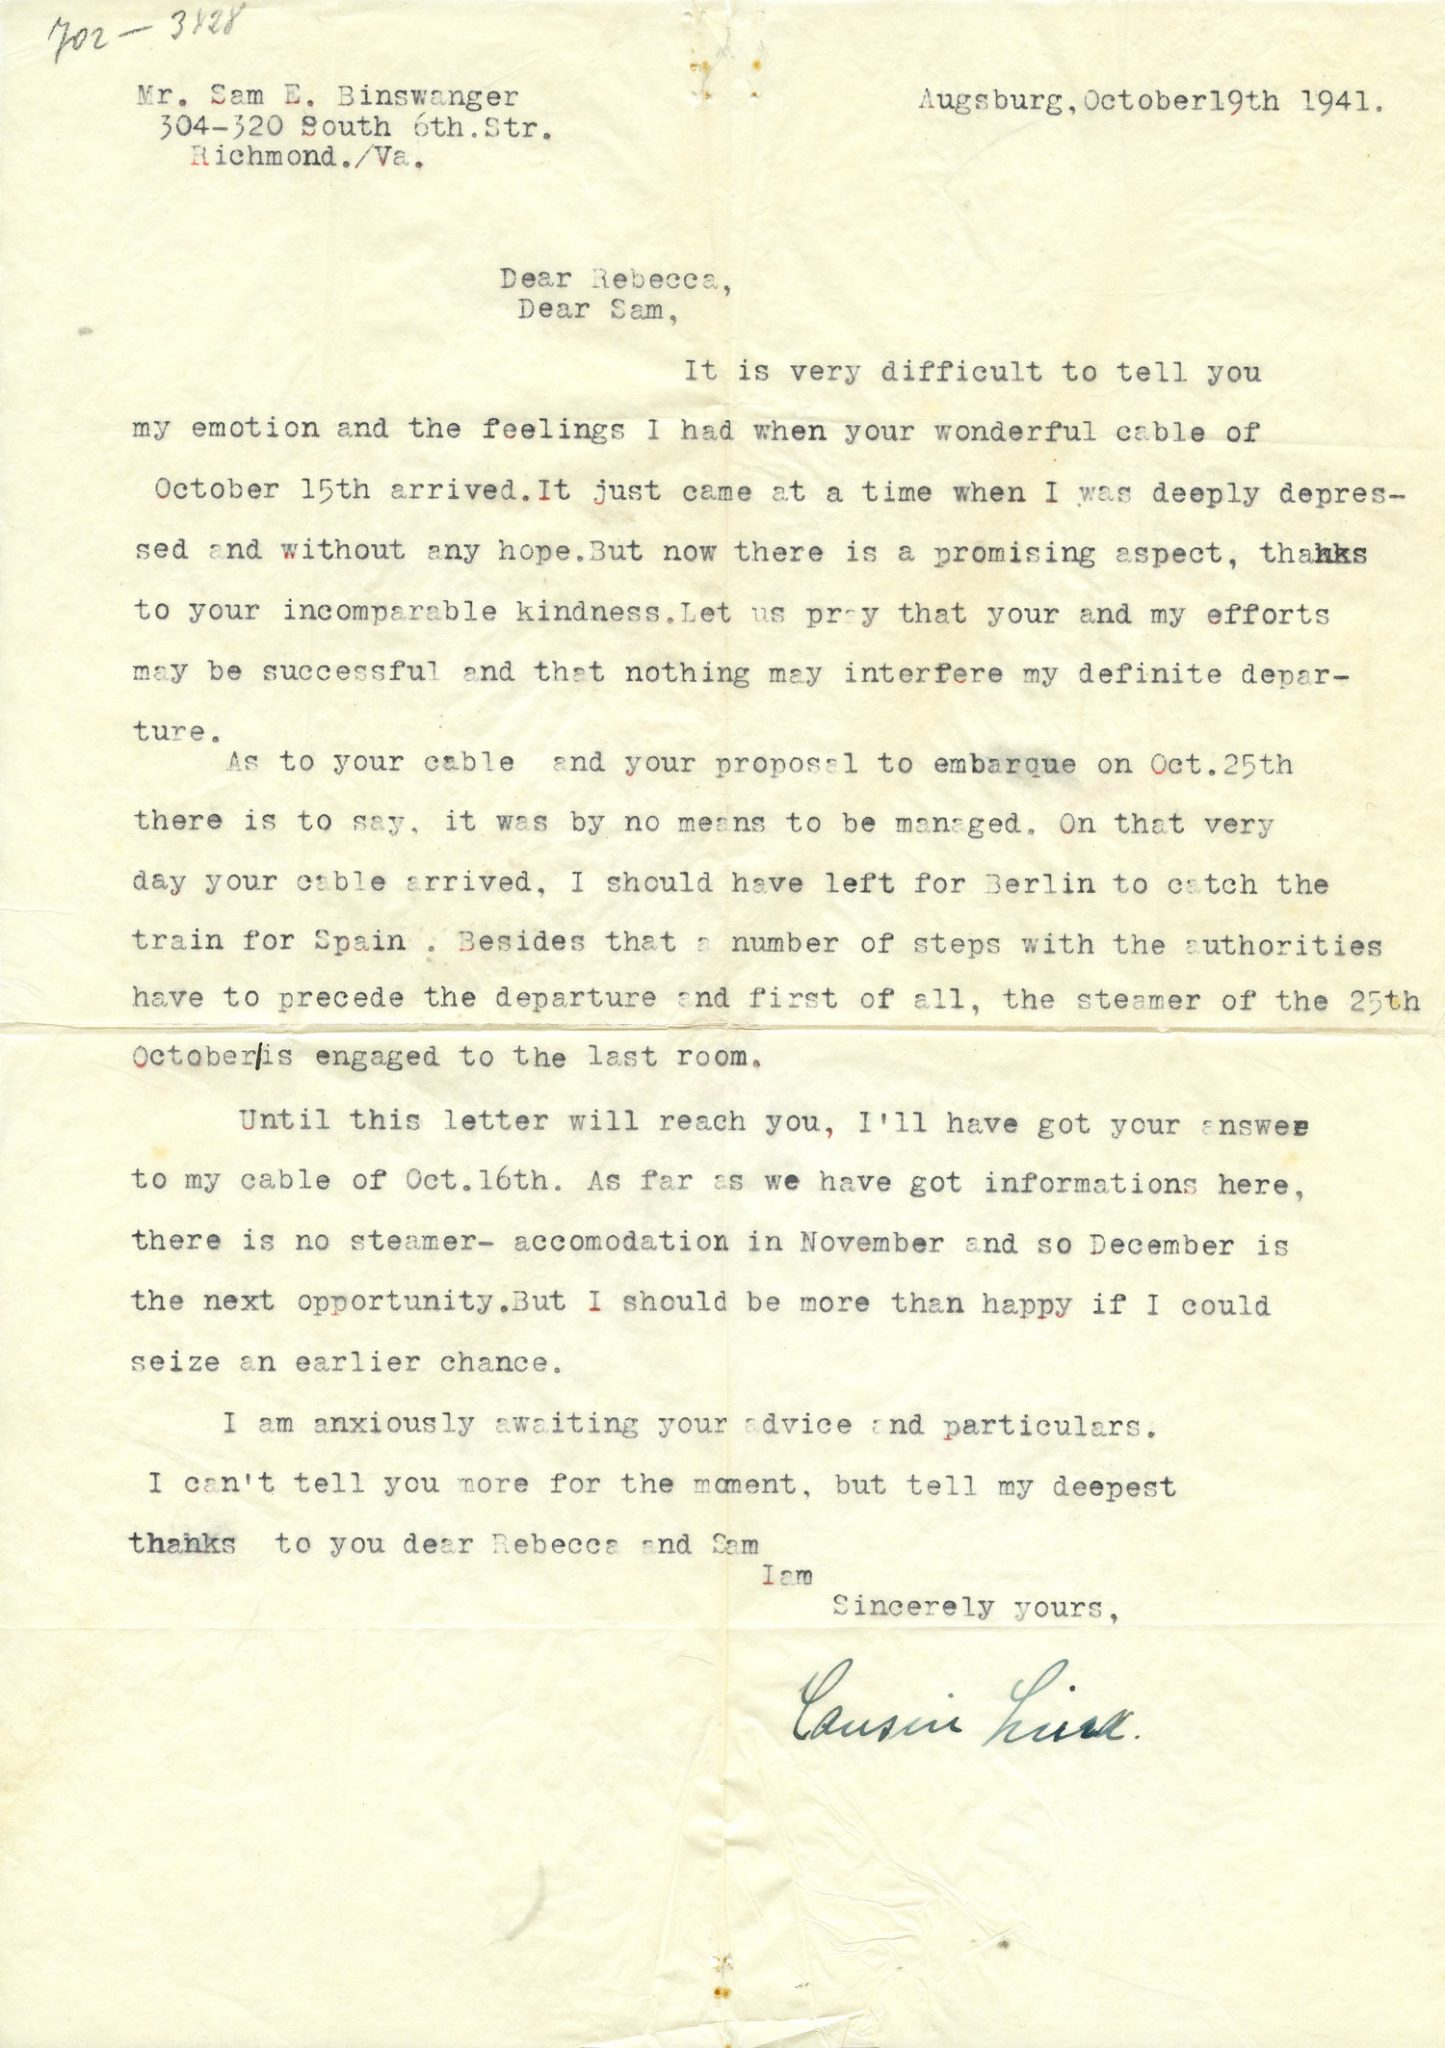 Eisenmann Letter, October 1941